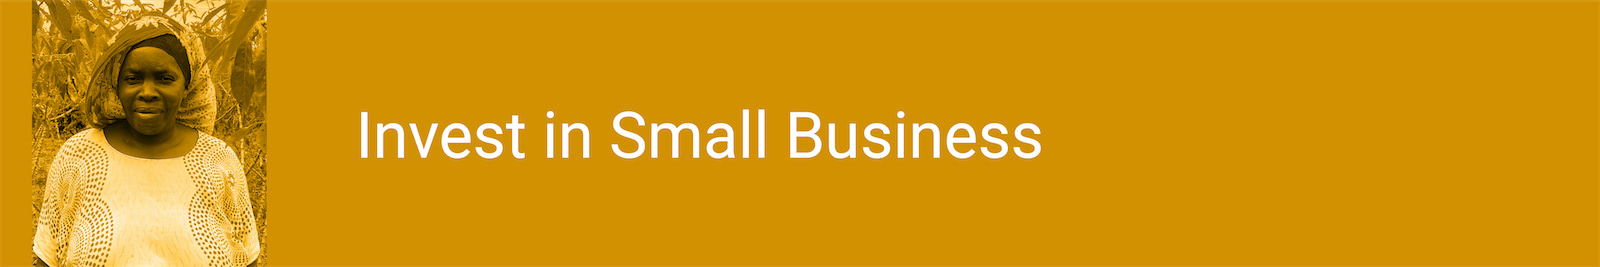 Invest in Small Business